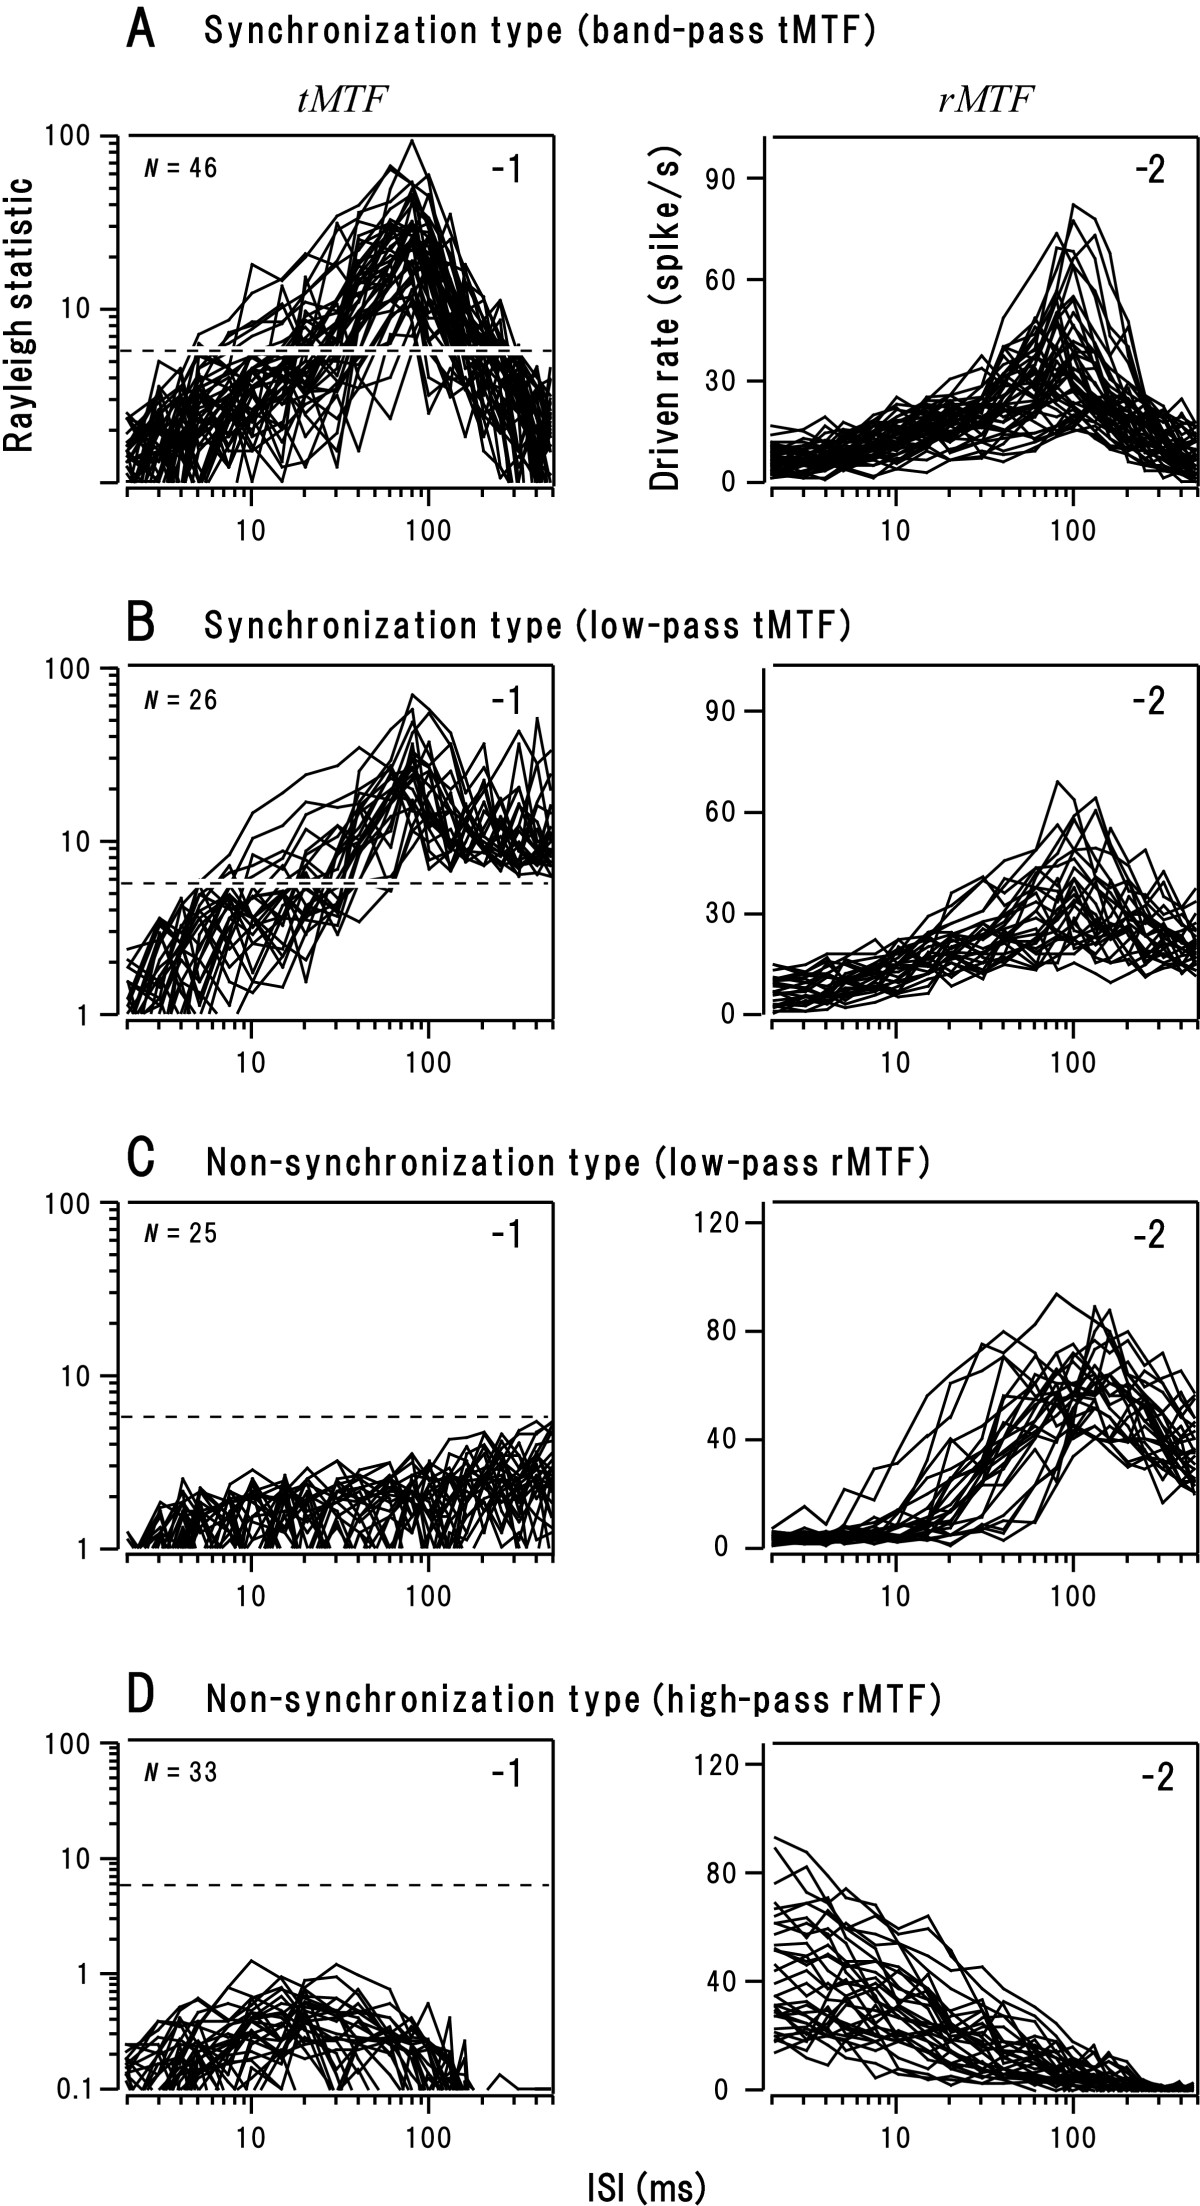 https://static-content.springer.com/image/art%3A10.1186%2F1471-2202-10-10/MediaObjects/12868_2008_Article_1014_Fig2_HTML.jpg